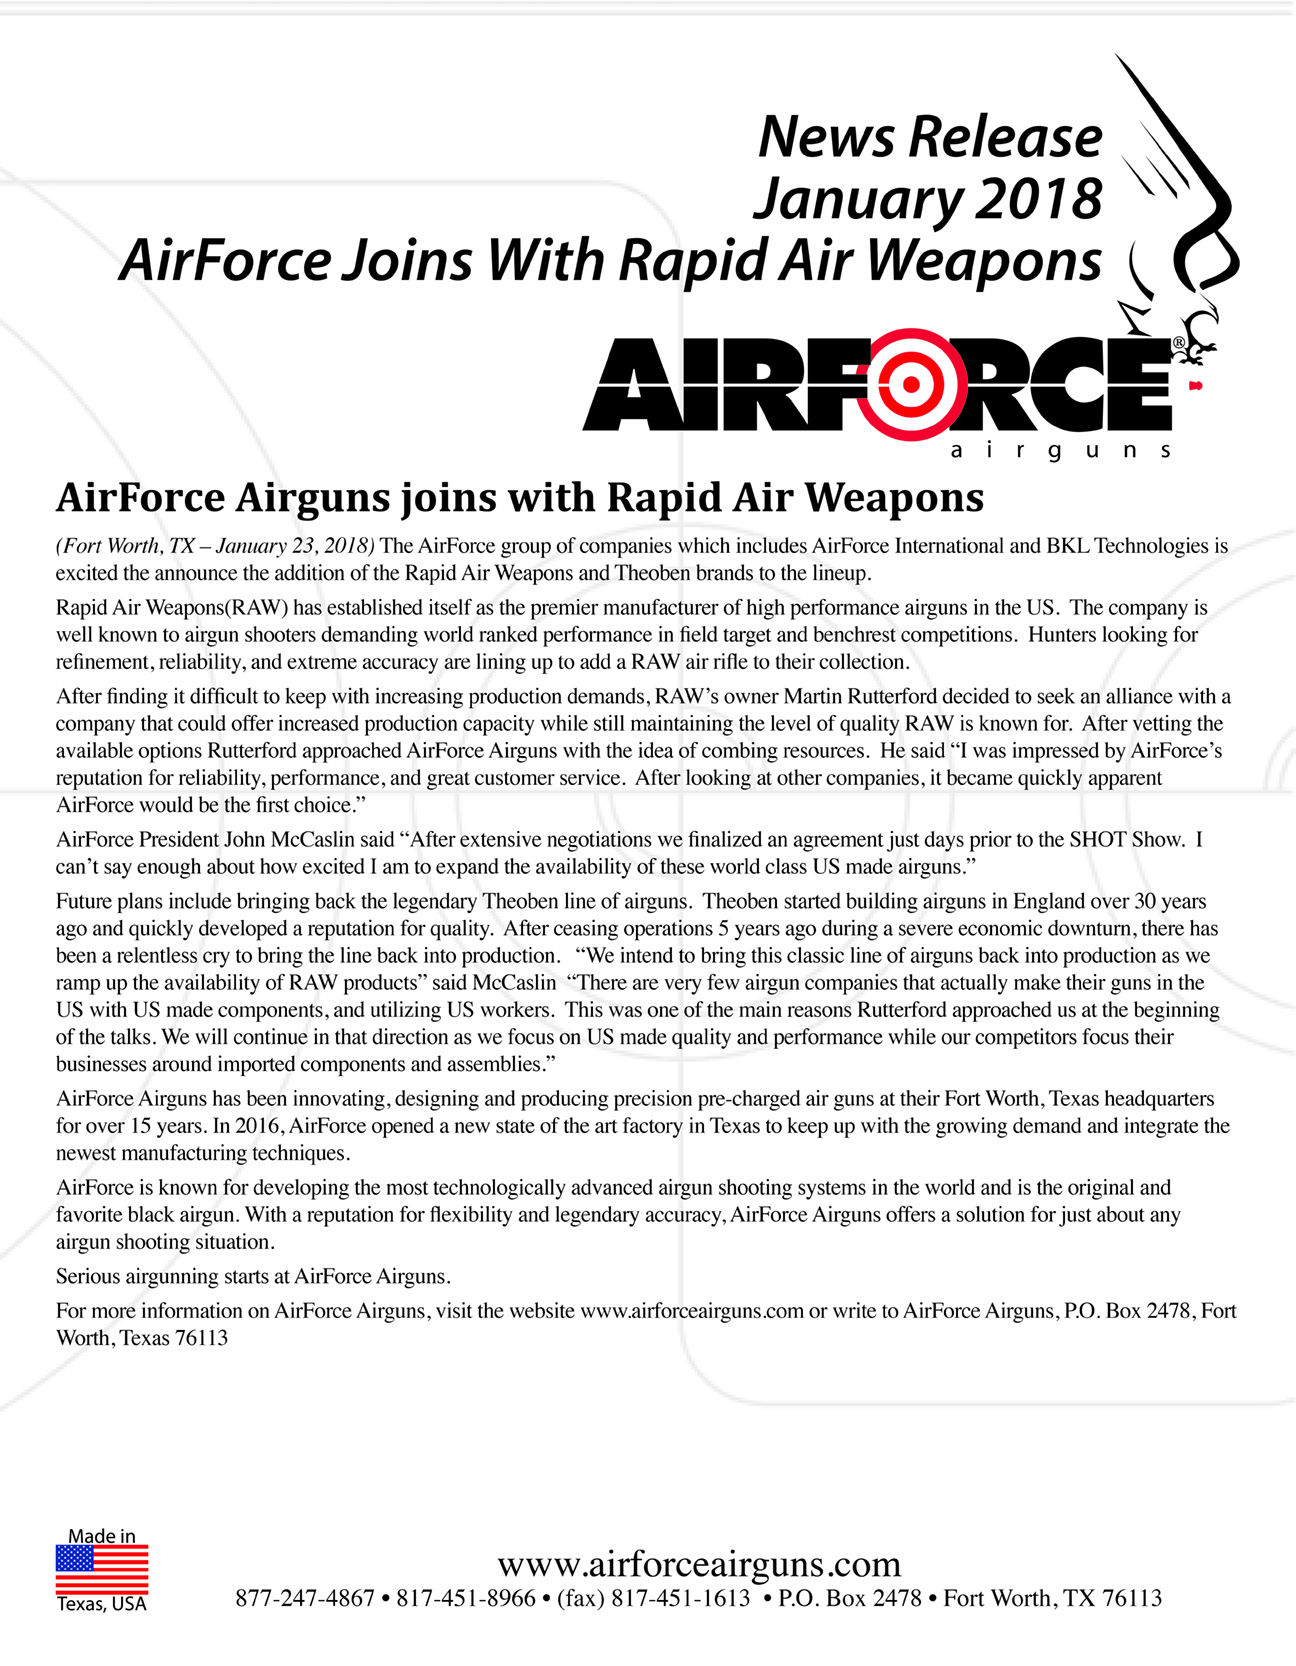 AirForce Airguns joins with Rapid Air Weapons